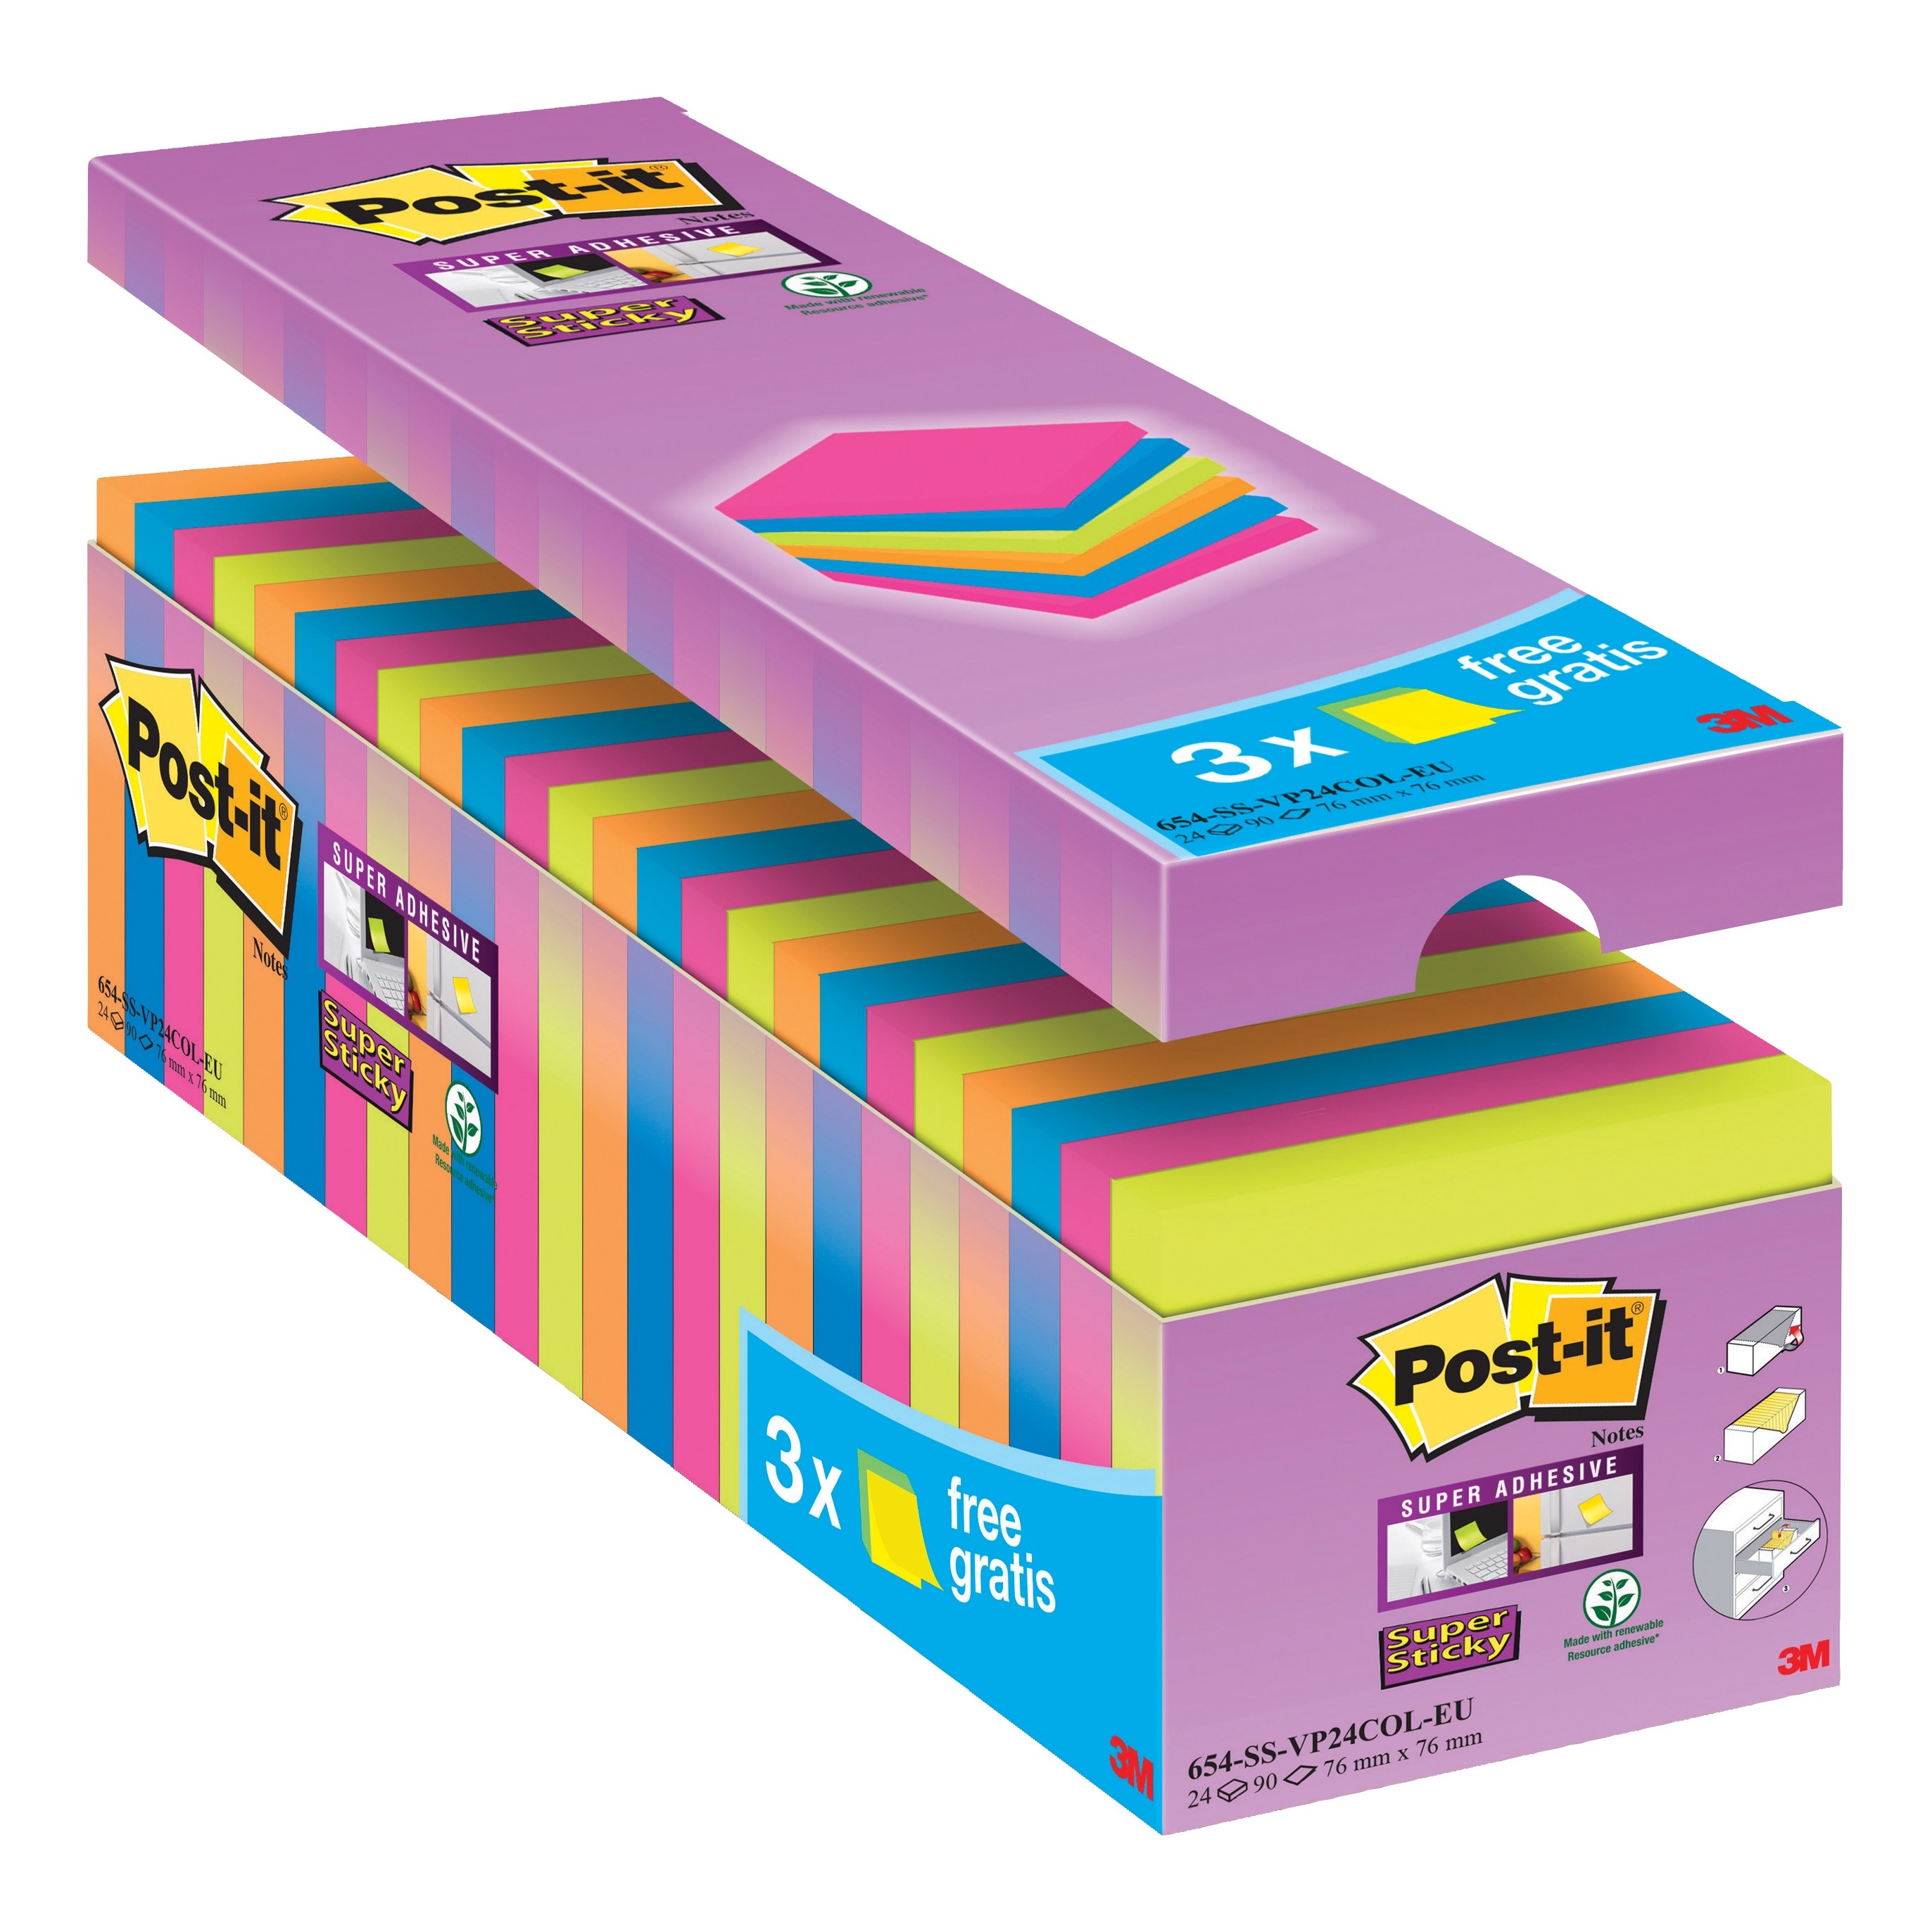 Post-it Super Sticky Notes Value Pack Pad 90 Sheets 76x76mm Assorted Ref 654-SS-VP24COL-EU Pack 24